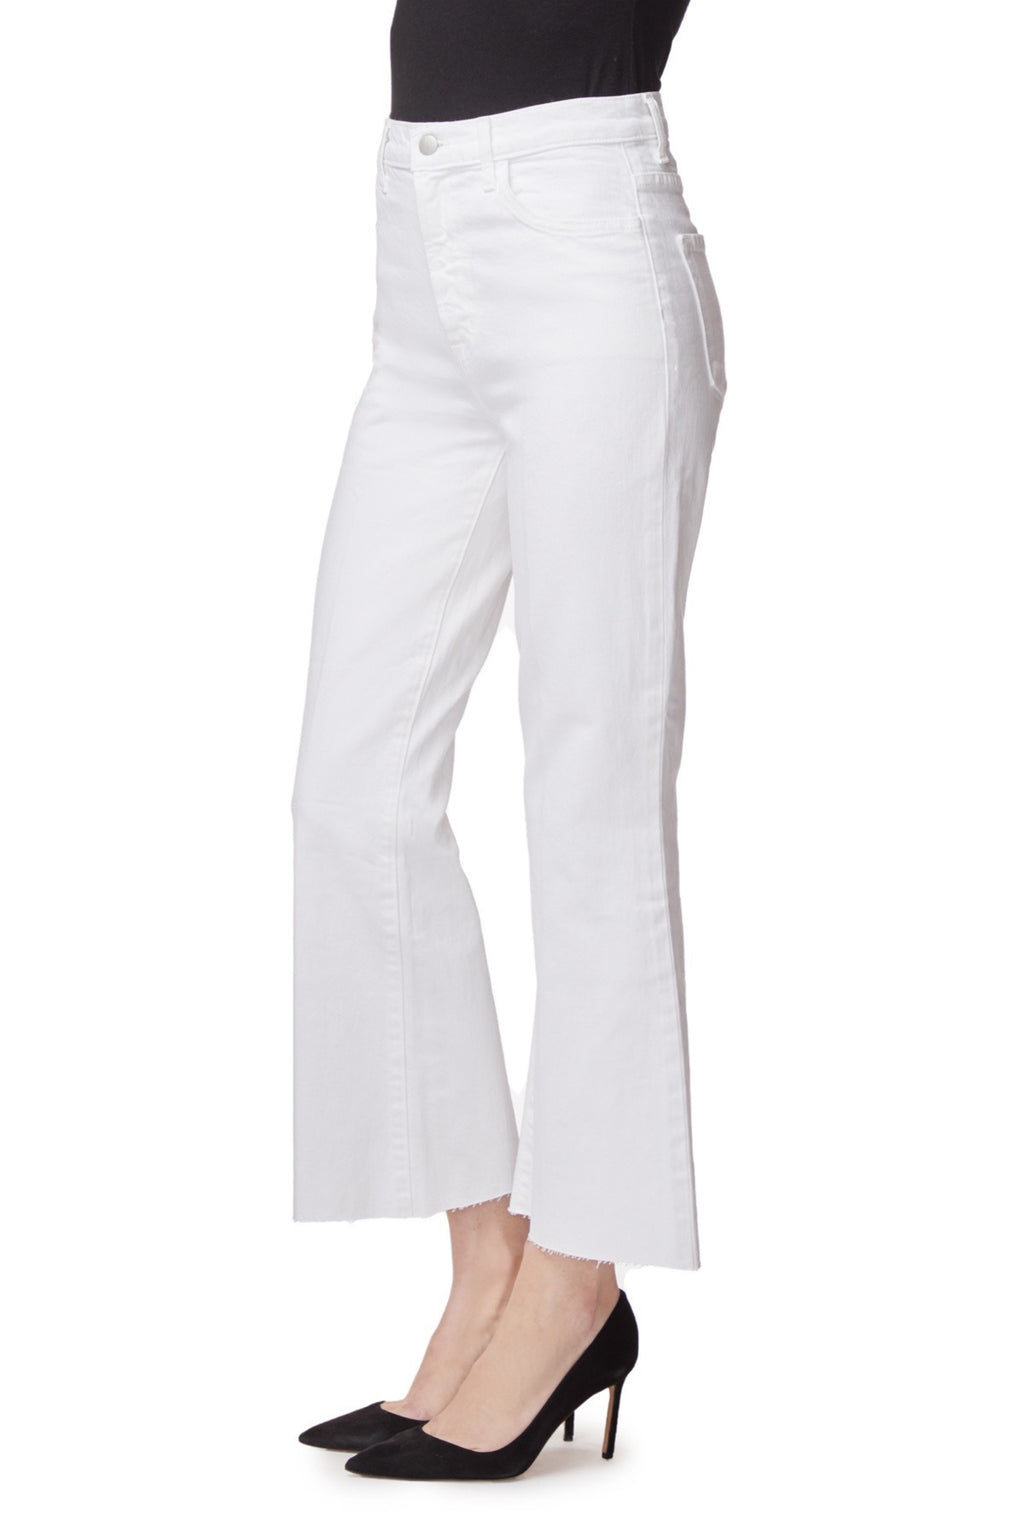 Julia High Rise Flare White